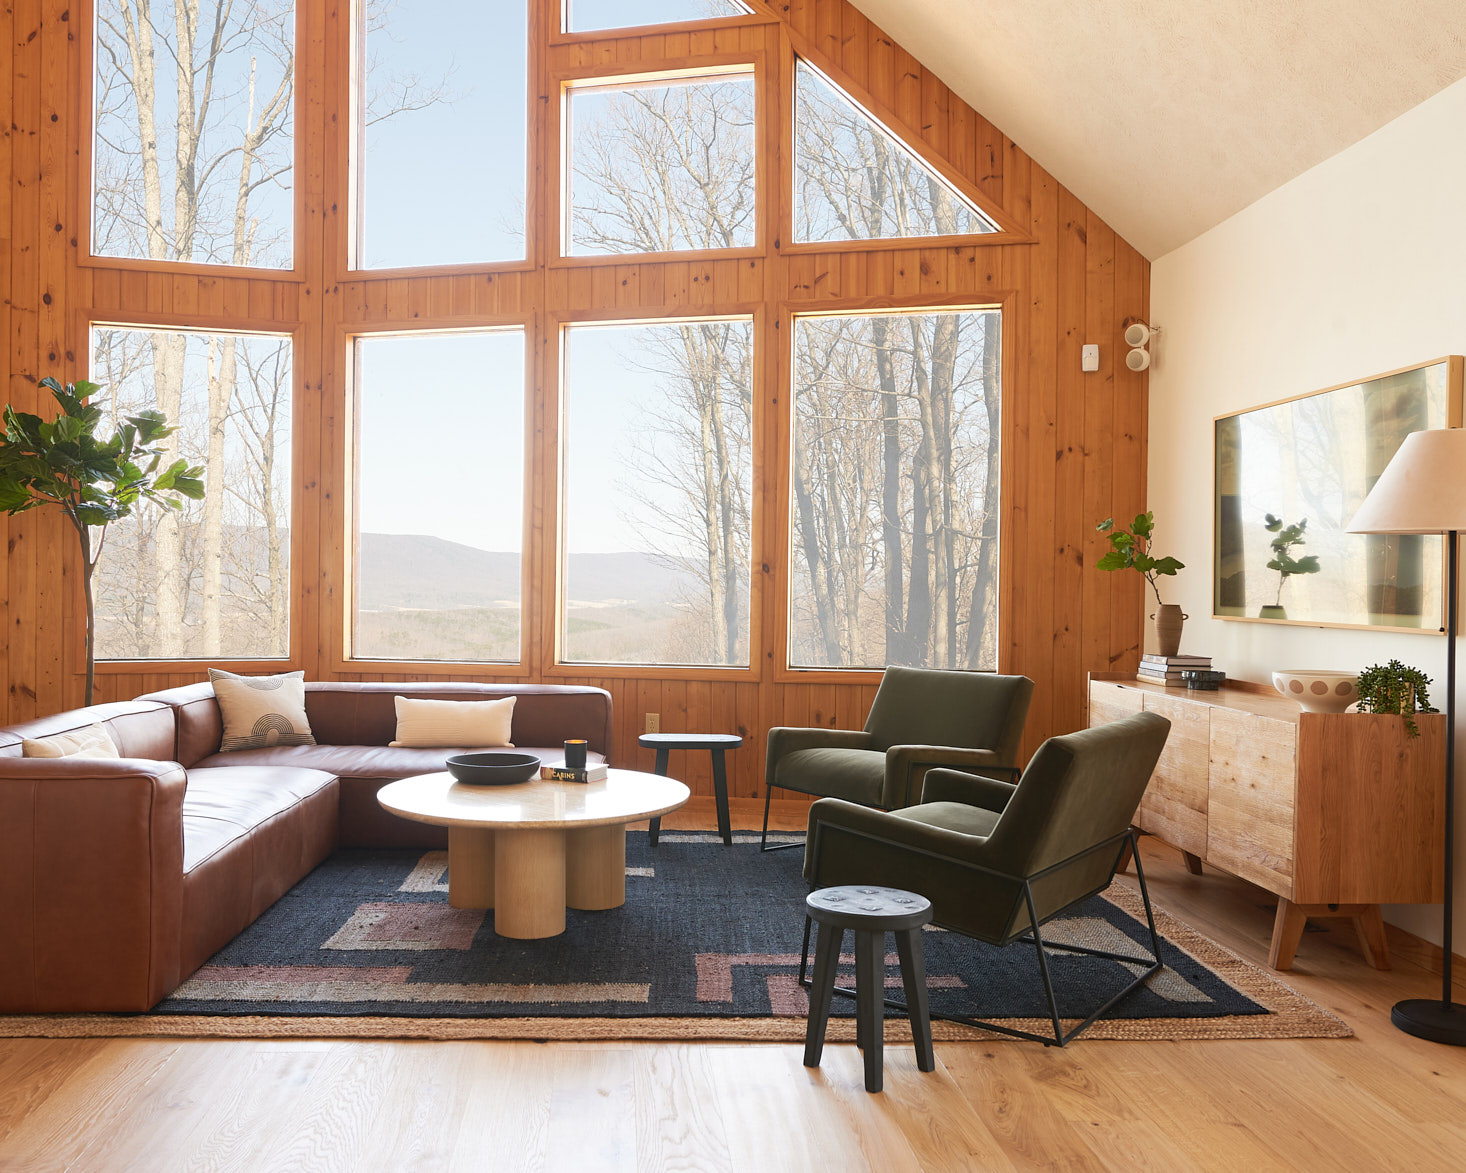 a-frame cabin with article furniture